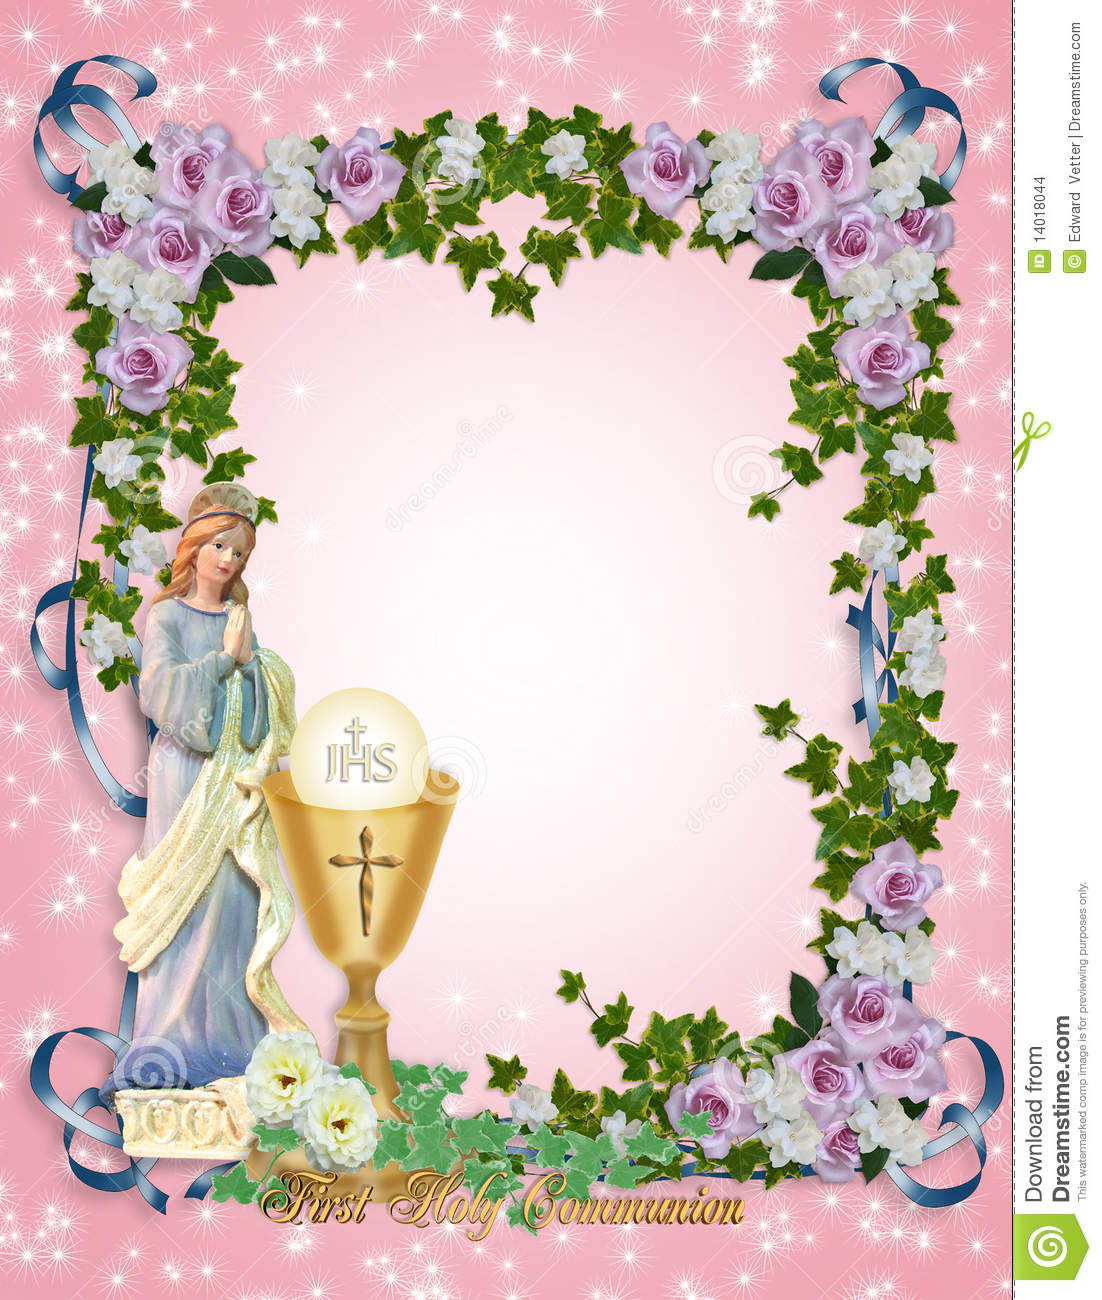 image about First Communion Invitations Free Printable known as Very first Holy Communion Invitation Inventory Example